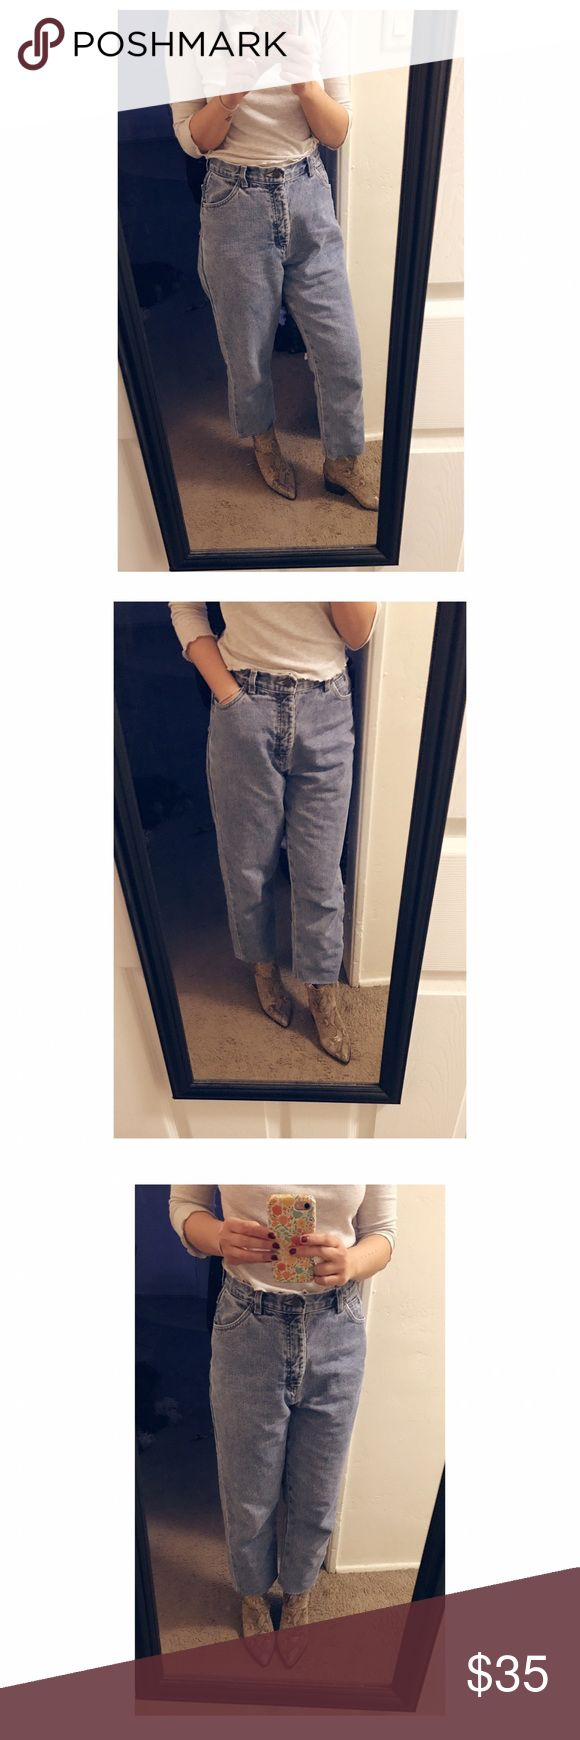 ⭐️ Vintage High Waisted Jeans ⭐️ The perfect high-waisted vintage jeans you could ever ask for! Bought off a posher and cropped them to wear with ankle boots, loafers or sneakers. Have to resell because they're way too big on me 🙁 tried to make it work! Waist is about 14.5inches. So between a 27-28 would be ideal. Vintage Jeans Ankle & Cropped